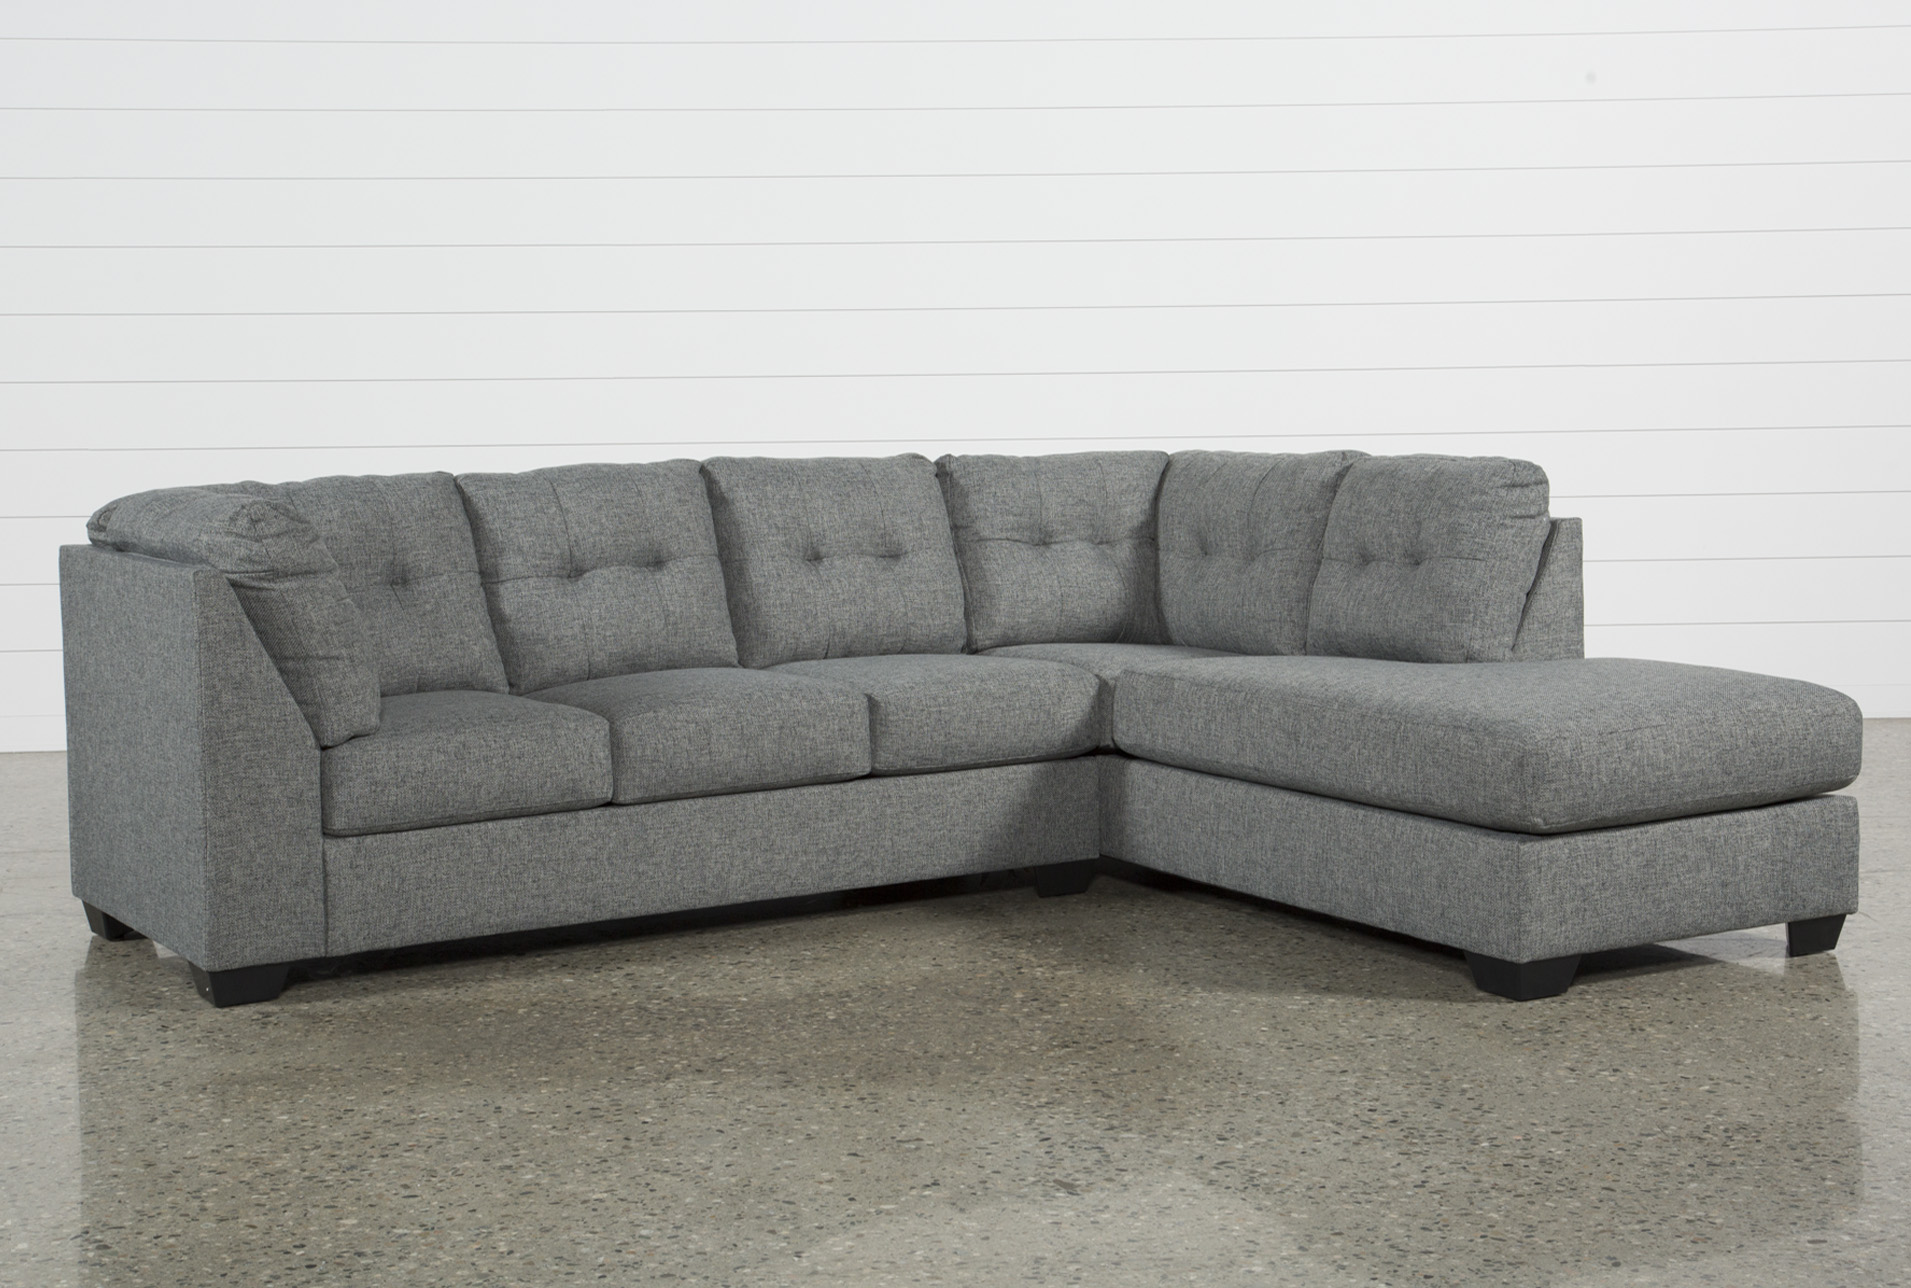 Arrowmask 2 Piece Sectional W/Sleeper & Raf Chaise   Living Spaces